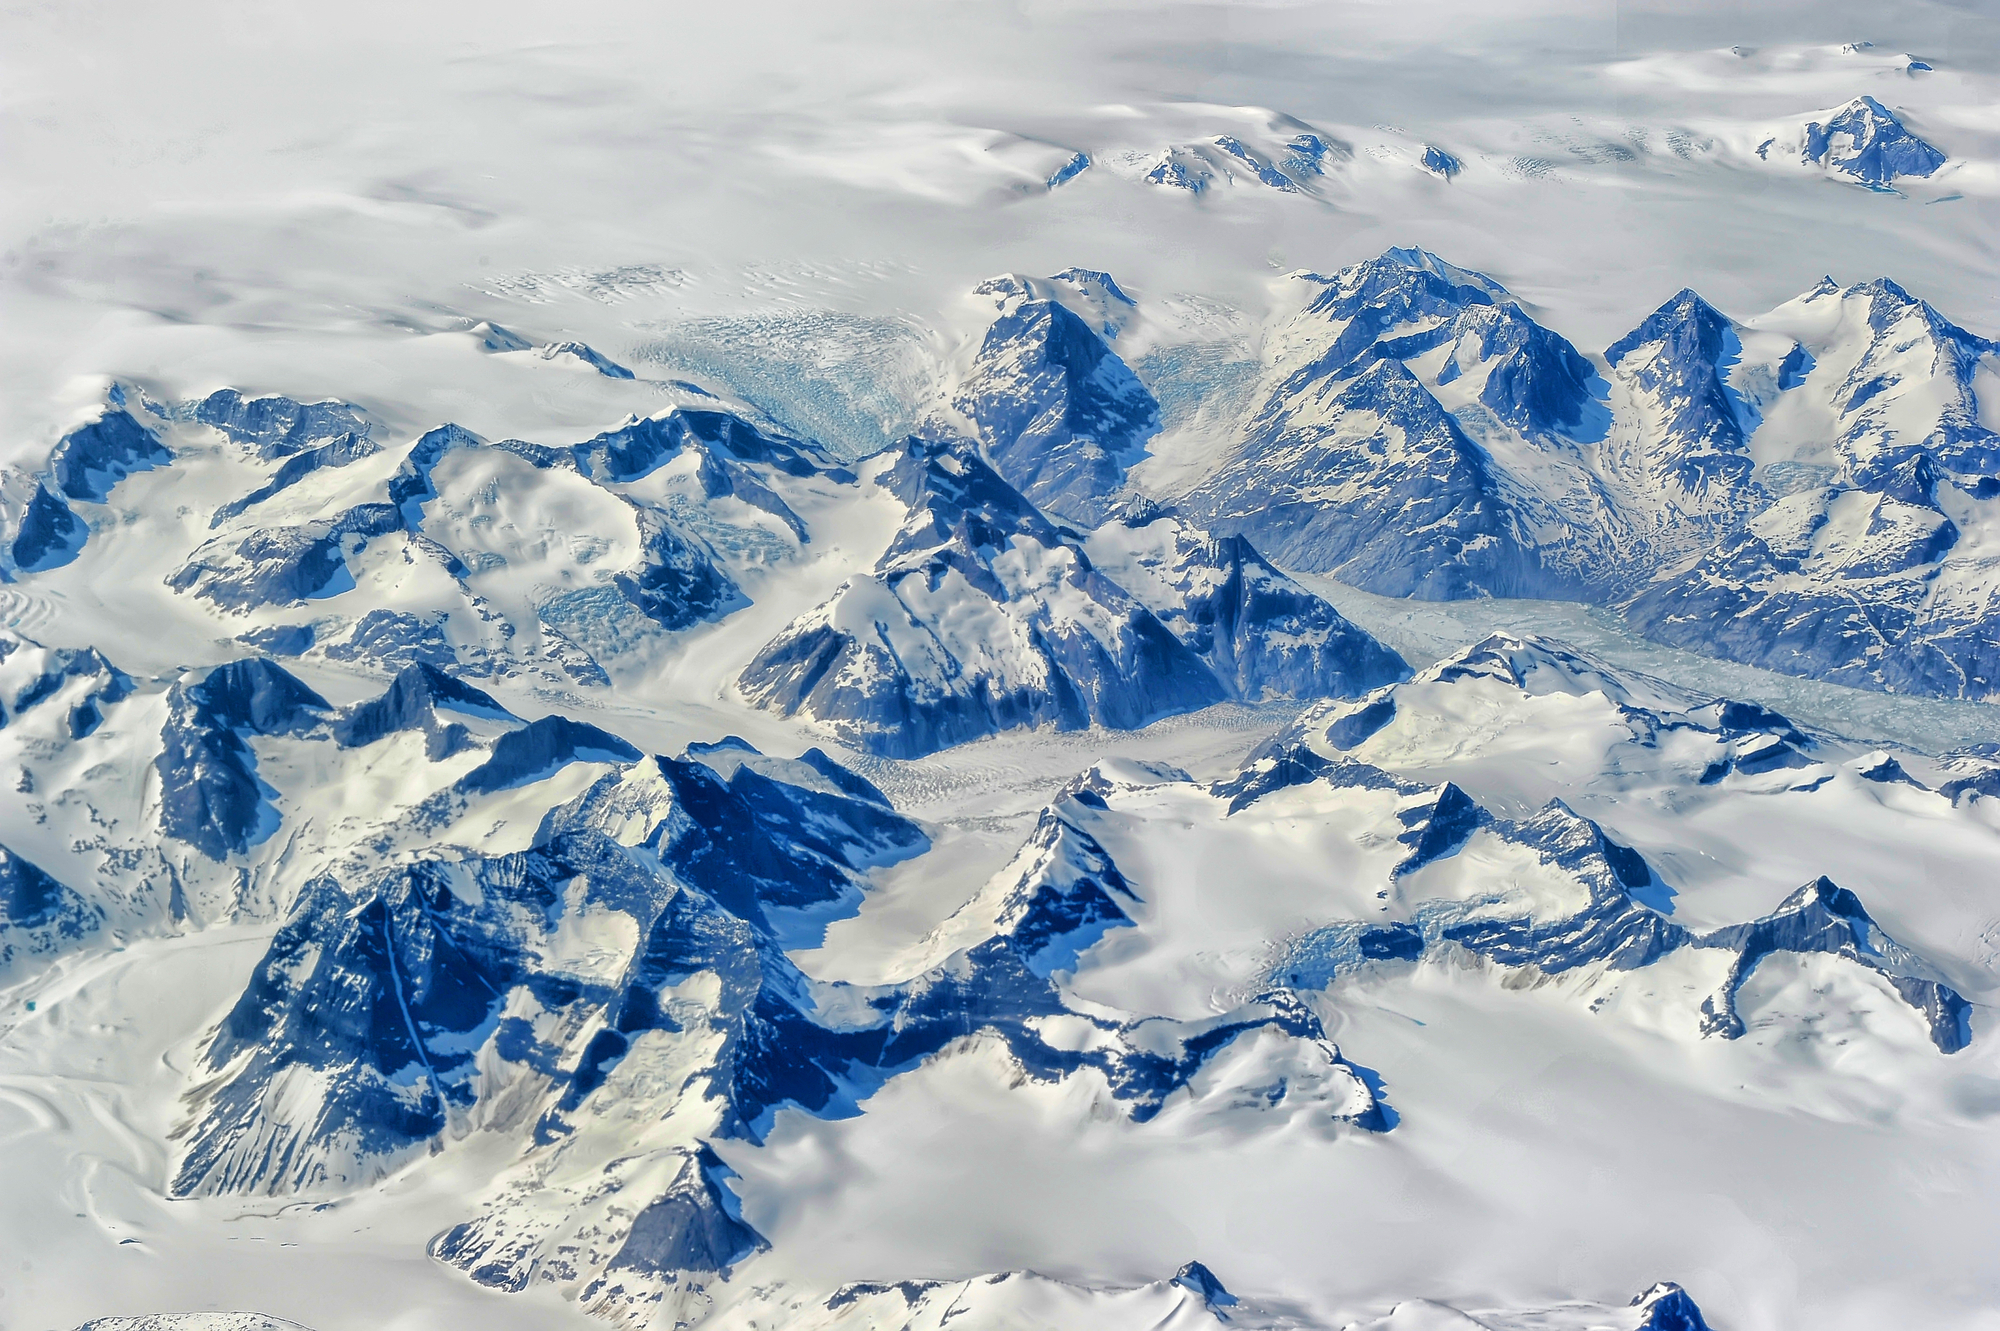 aerial shot of snowy mountains